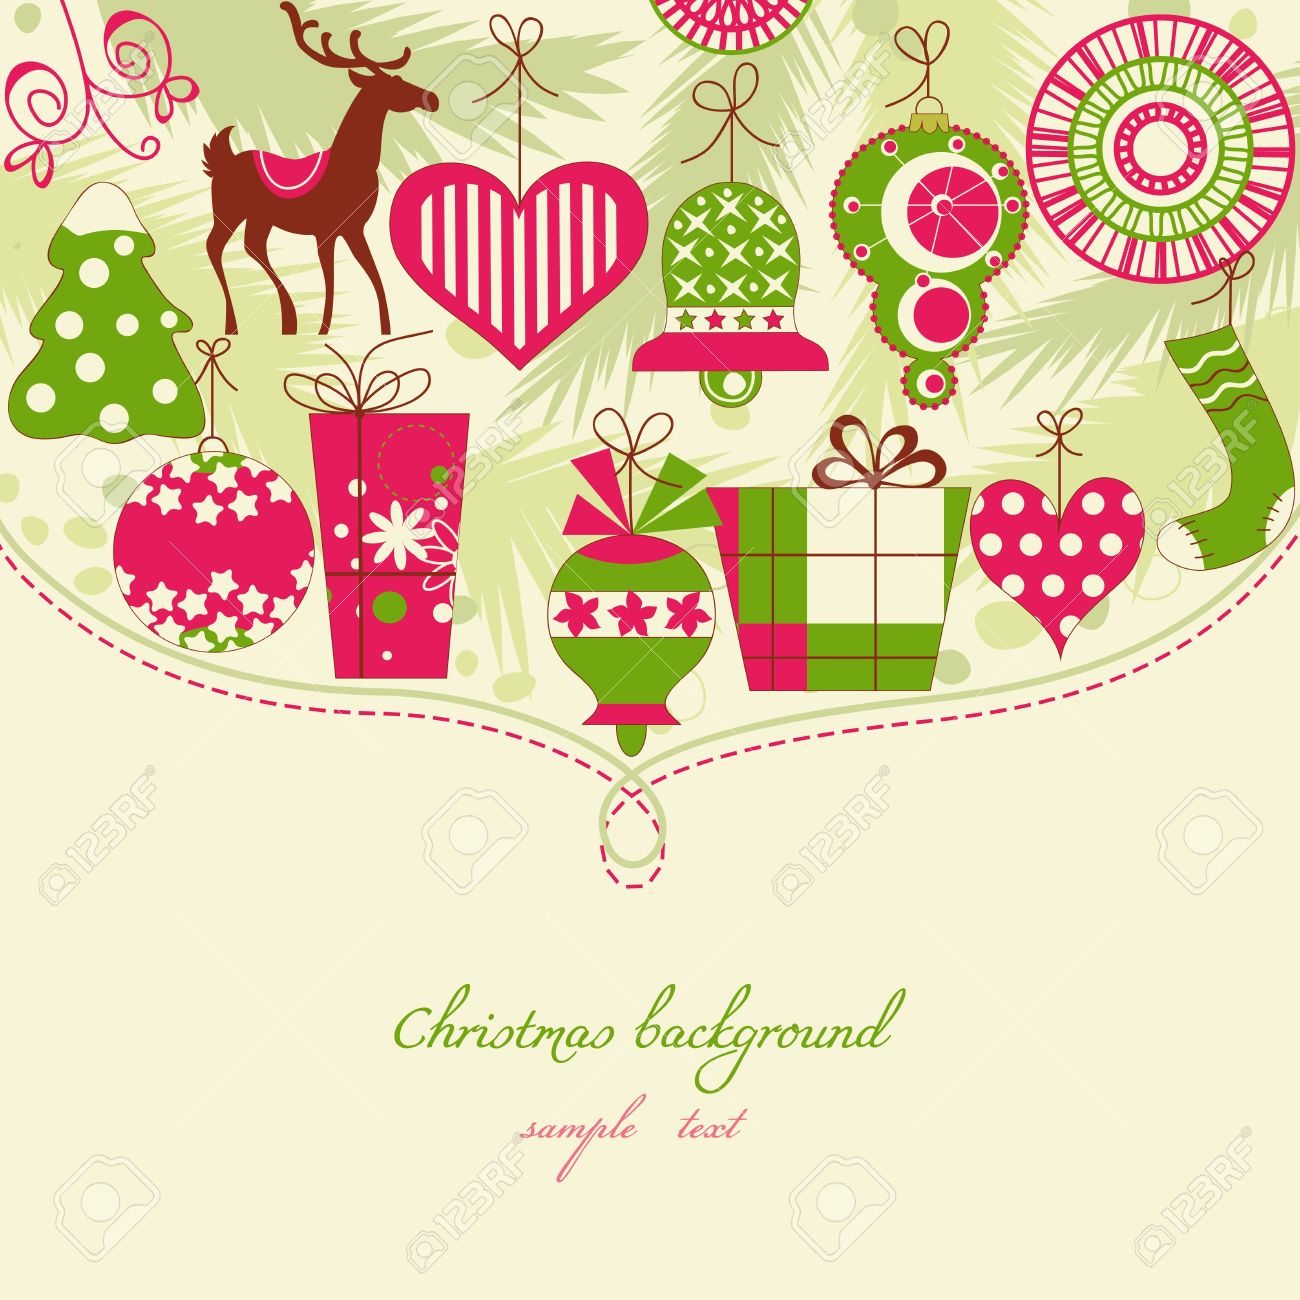 Christmas background in red and green icons Stock Vector - 11377005